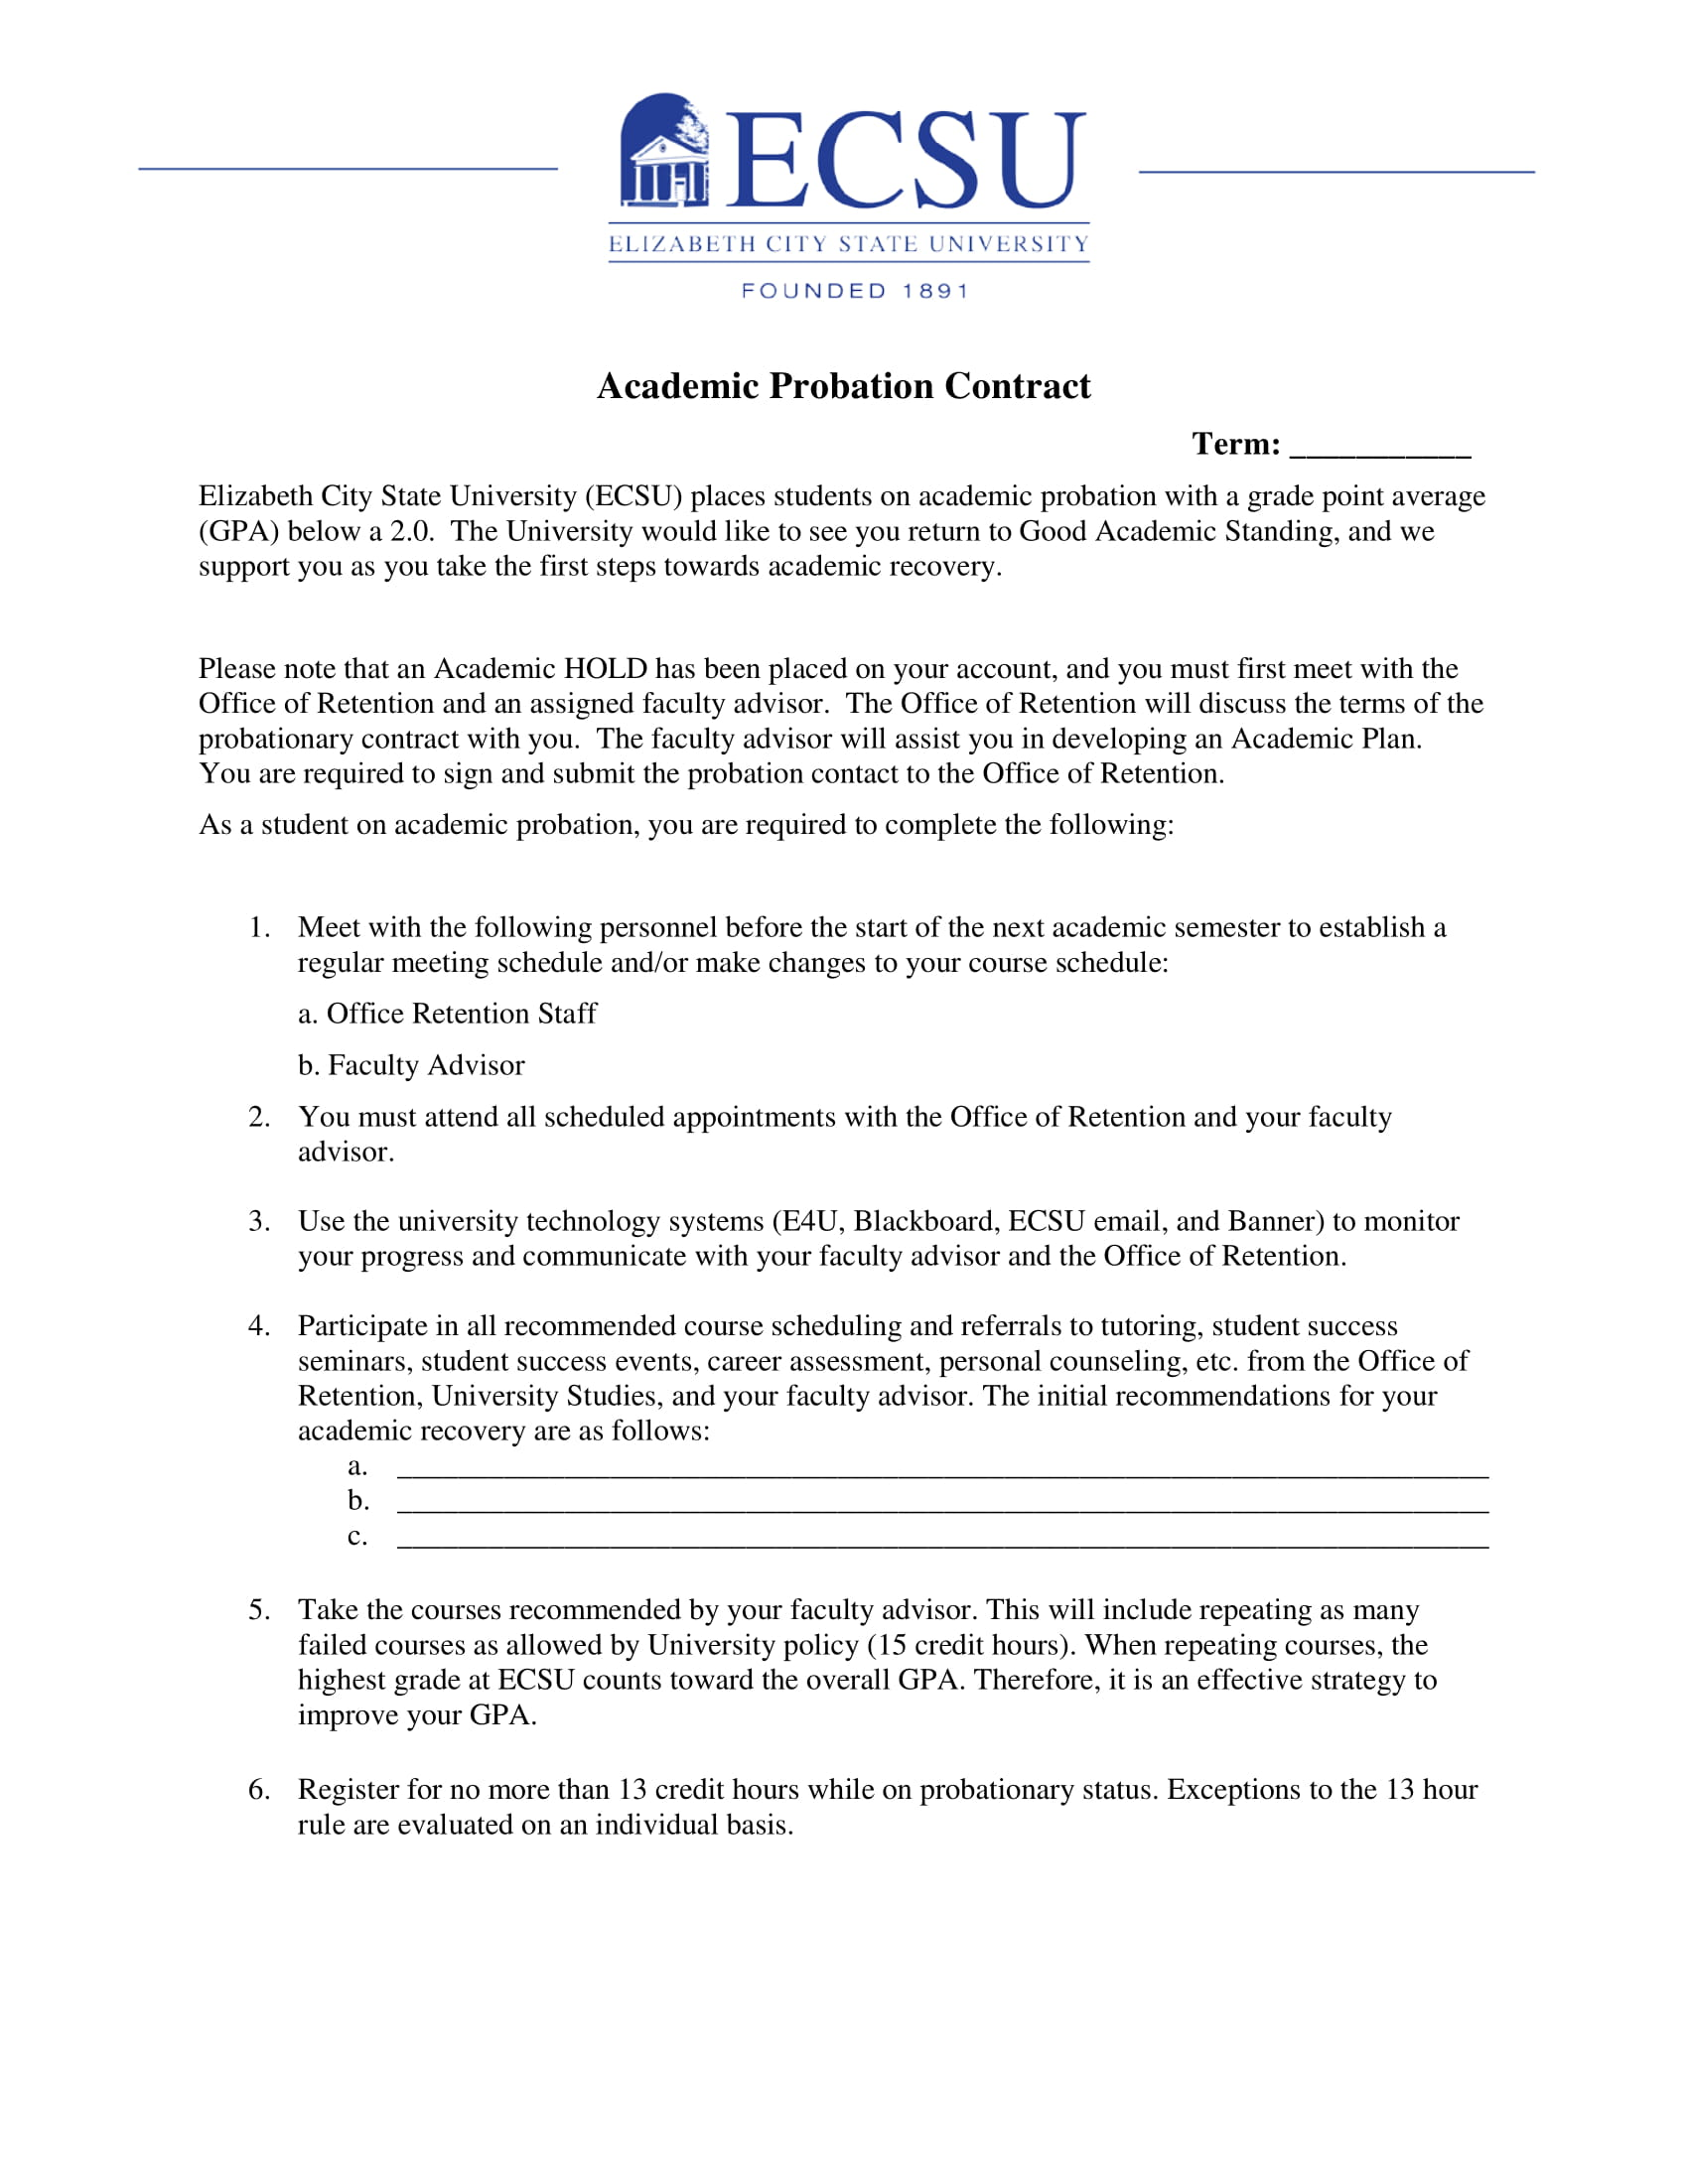 student academic probation contract format example 1